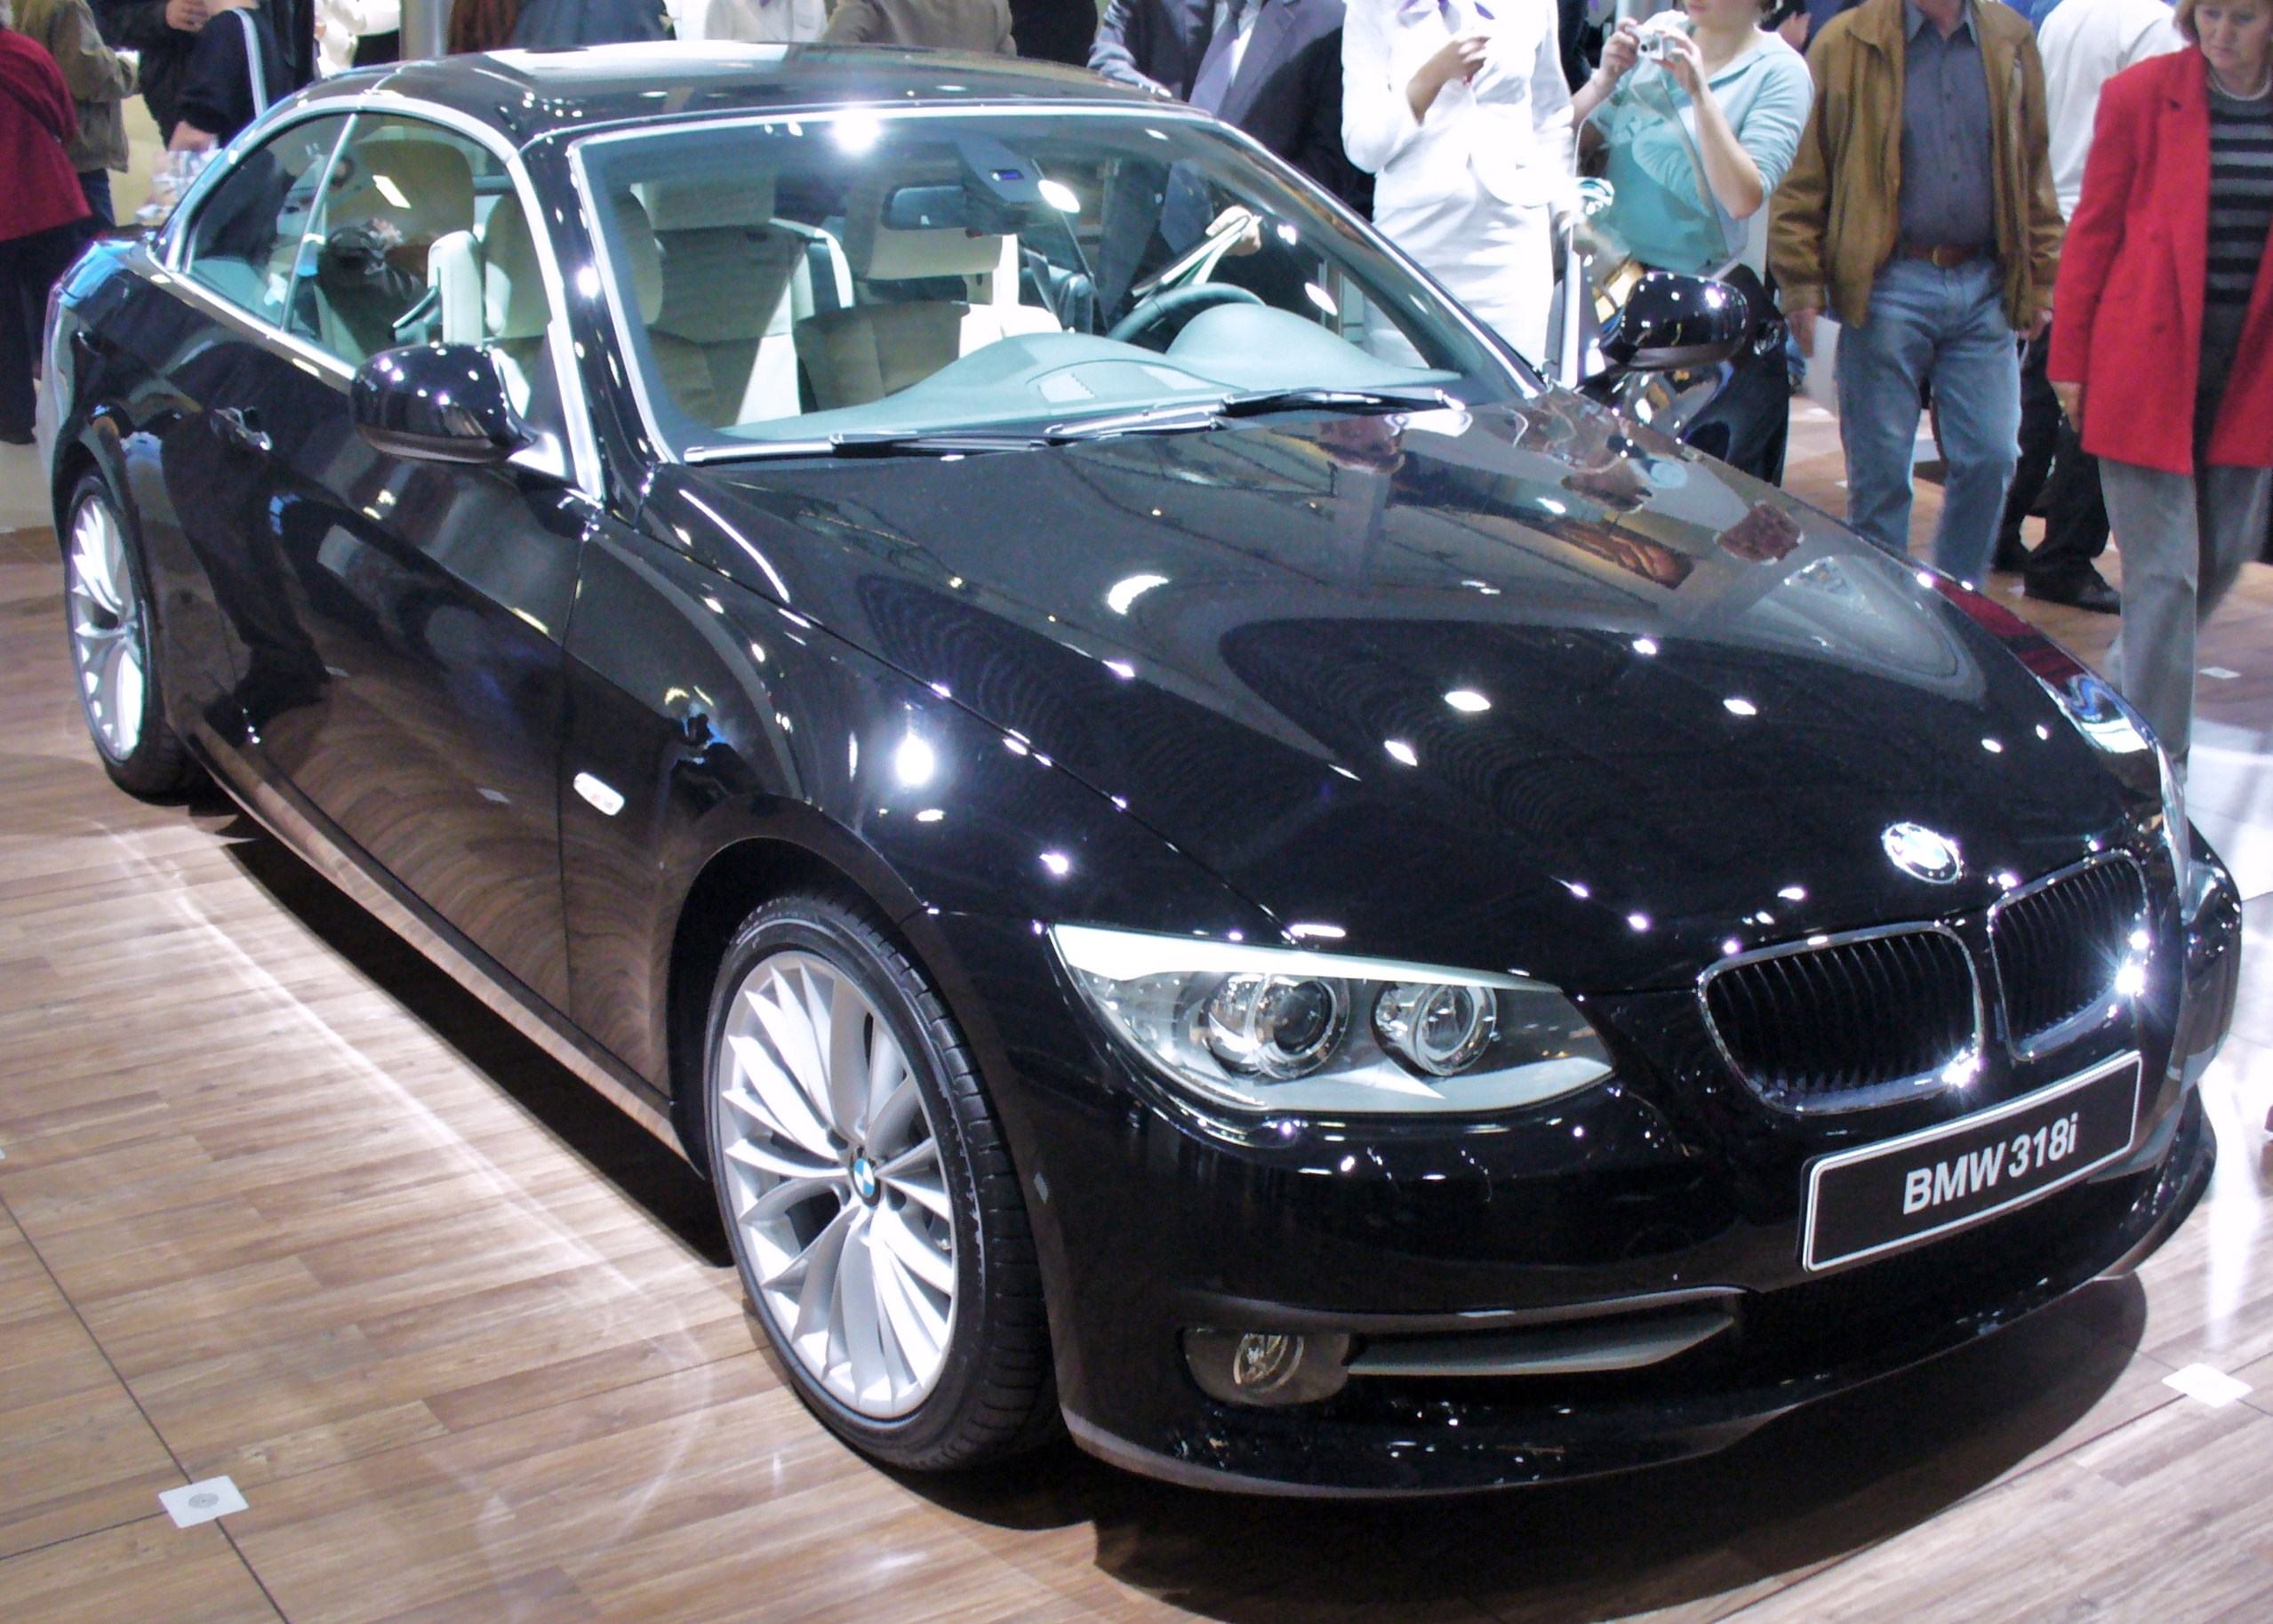 file bmw e93 318i cabrio facelift jpg wikimedia commons. Black Bedroom Furniture Sets. Home Design Ideas